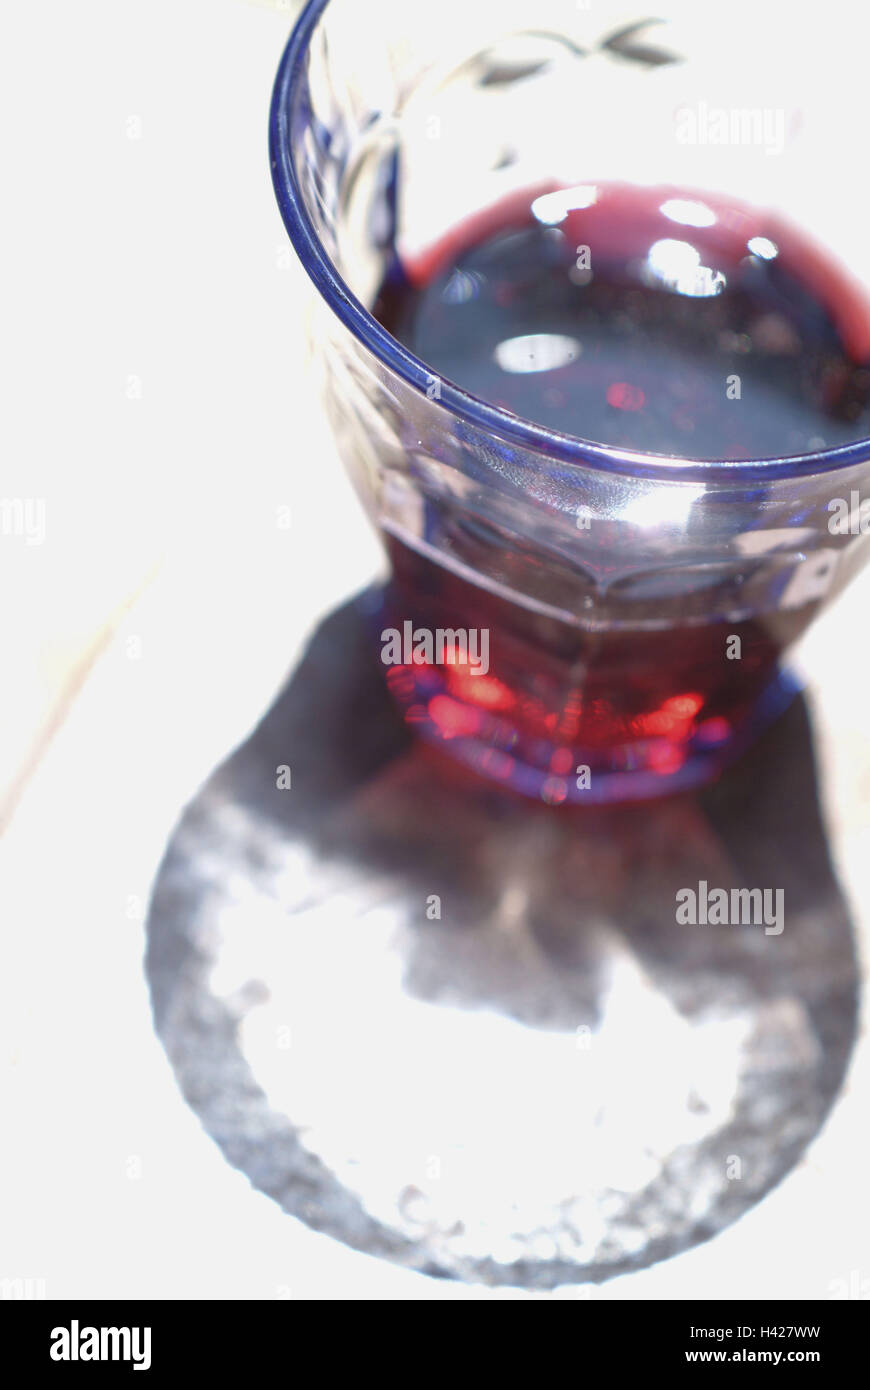 Table, glass, red wine, detail, from above street cafe, glass, wine, drink, alcohol, consumption, drinking, conception, - Stock Image